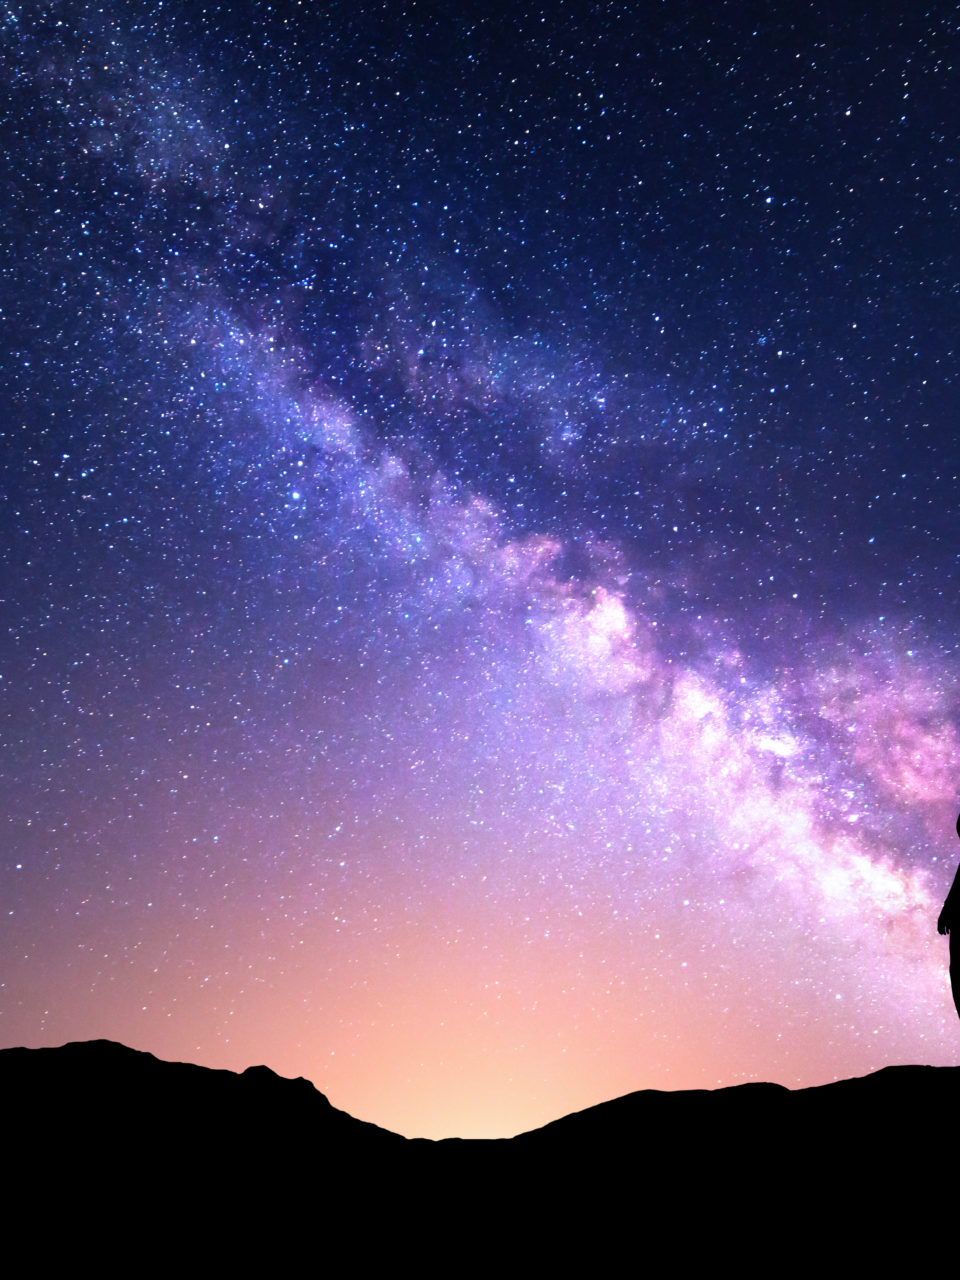 https://www.planetavenue.com/wp-content/uploads/2019/11/beautiful-milky-way-with-standing-woman-colorful-PPZ54Z8-960x1280.jpg